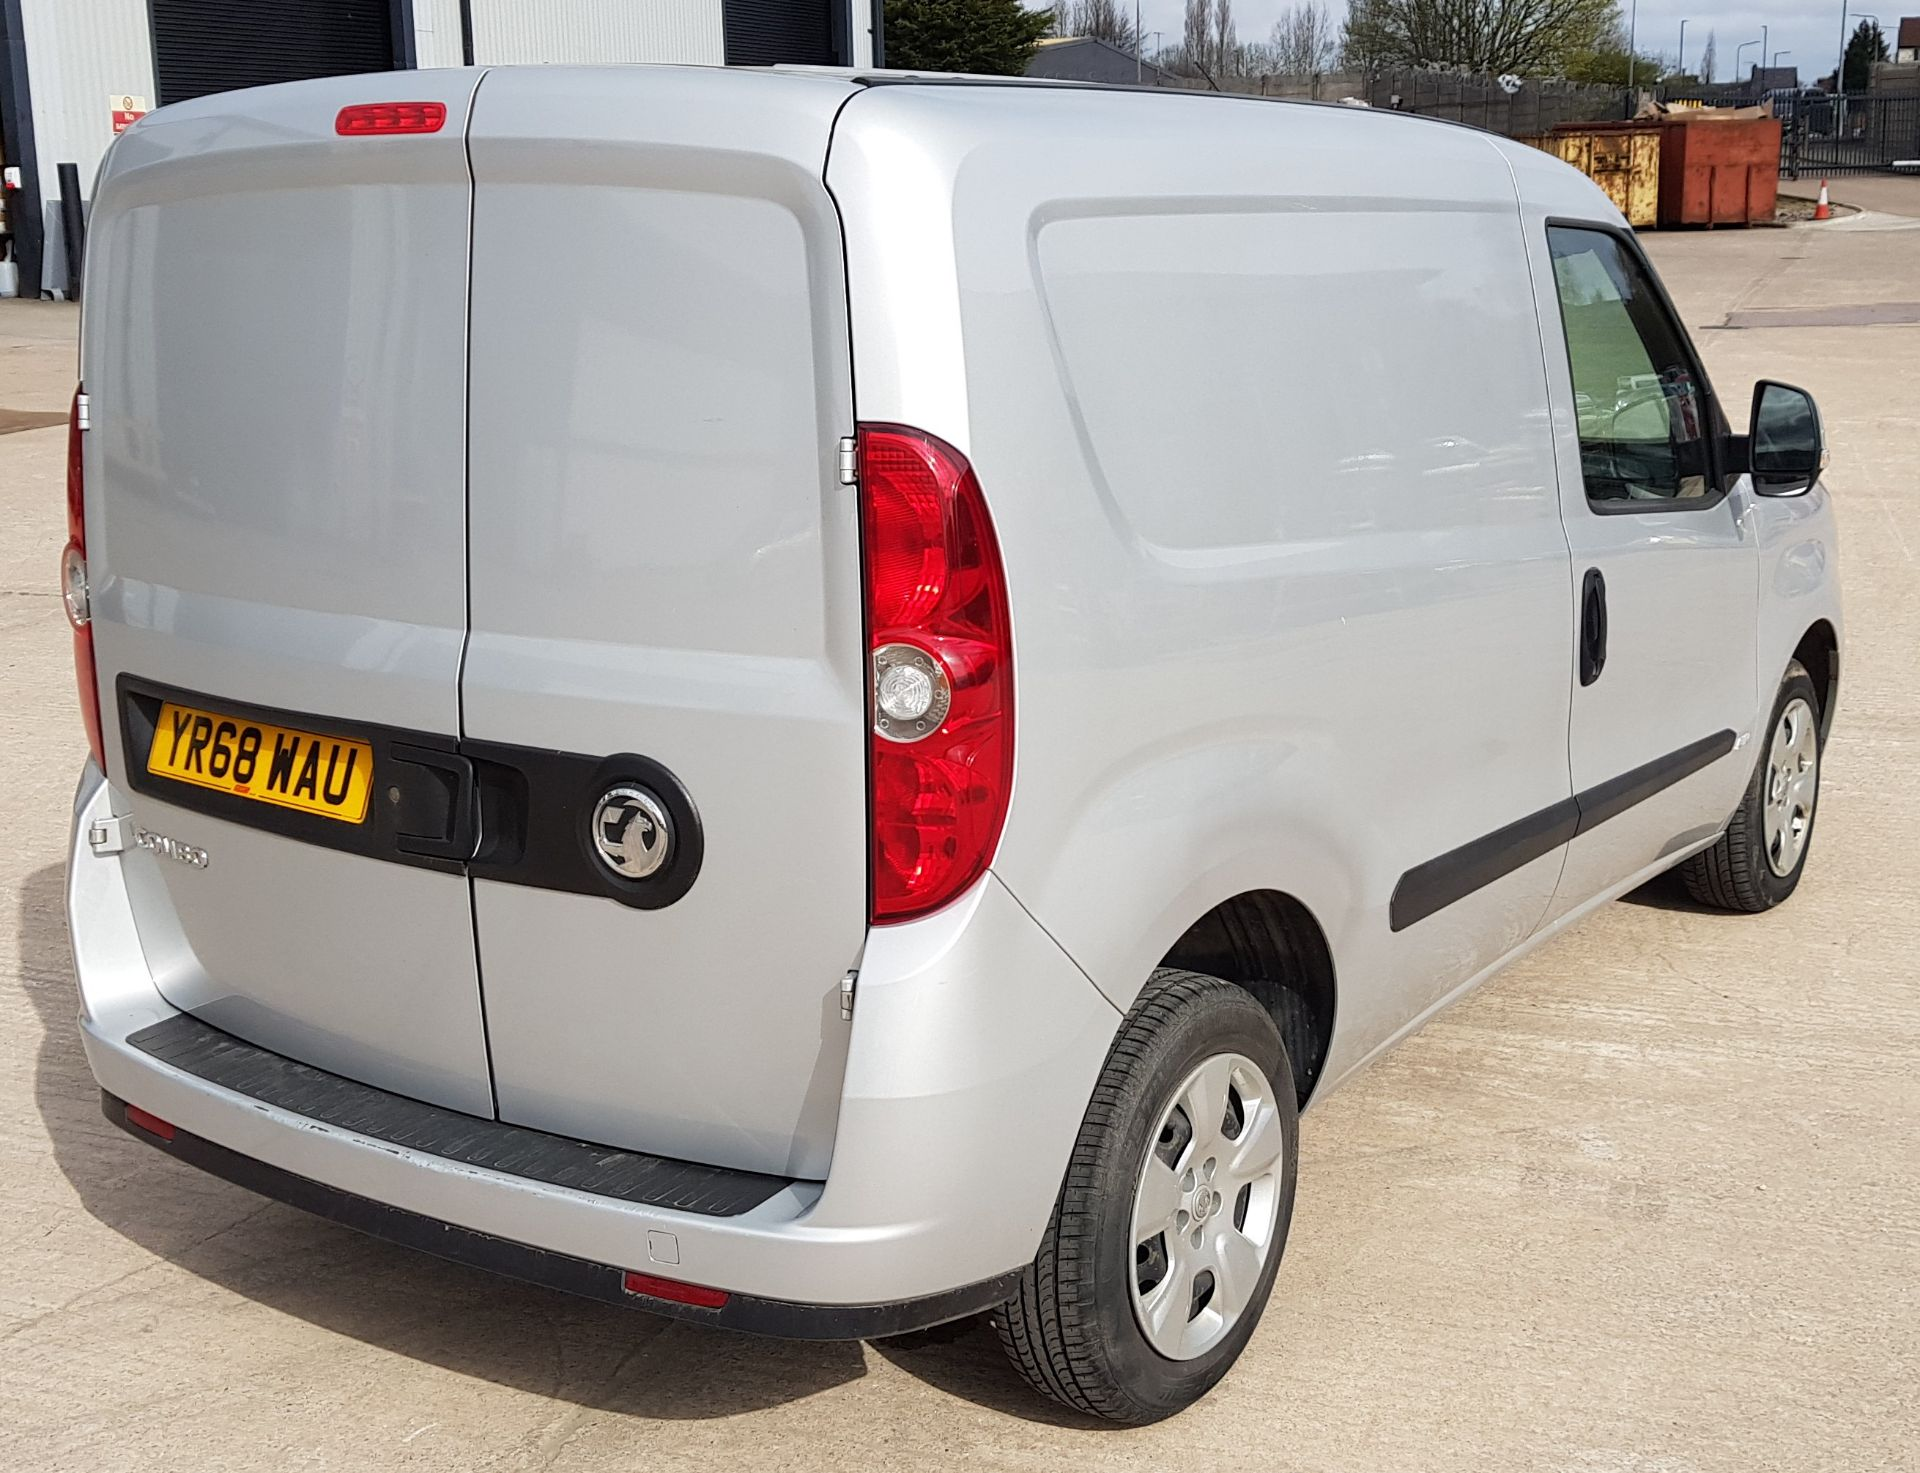 SILVER VAUXHALL COMBO 2000 SPORTIVE CDTI. ( DIESEL ) Reg : YR68 WAU Mileage : 39451 Details: WITH - Image 4 of 7